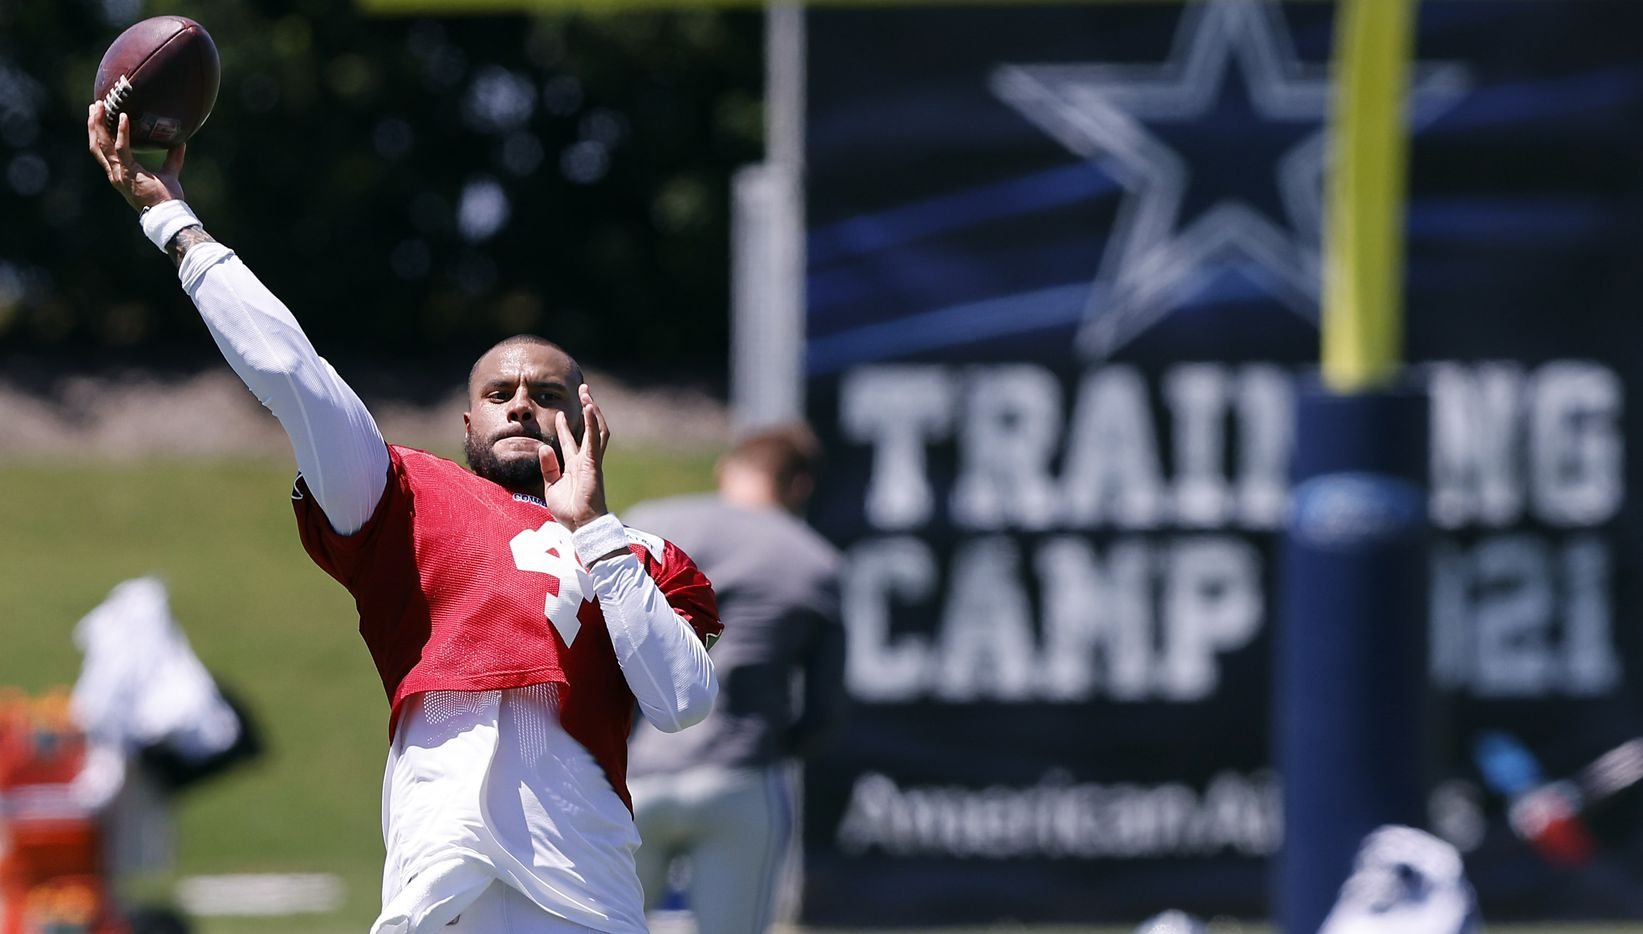 Dallas Cowboys quarterback Dak Prescott (4) throws passes after Training Camp practice at The Star in Frisco, Texas, Tuesday, August 24, 2021.(Tom Fox/The Dallas Morning News)